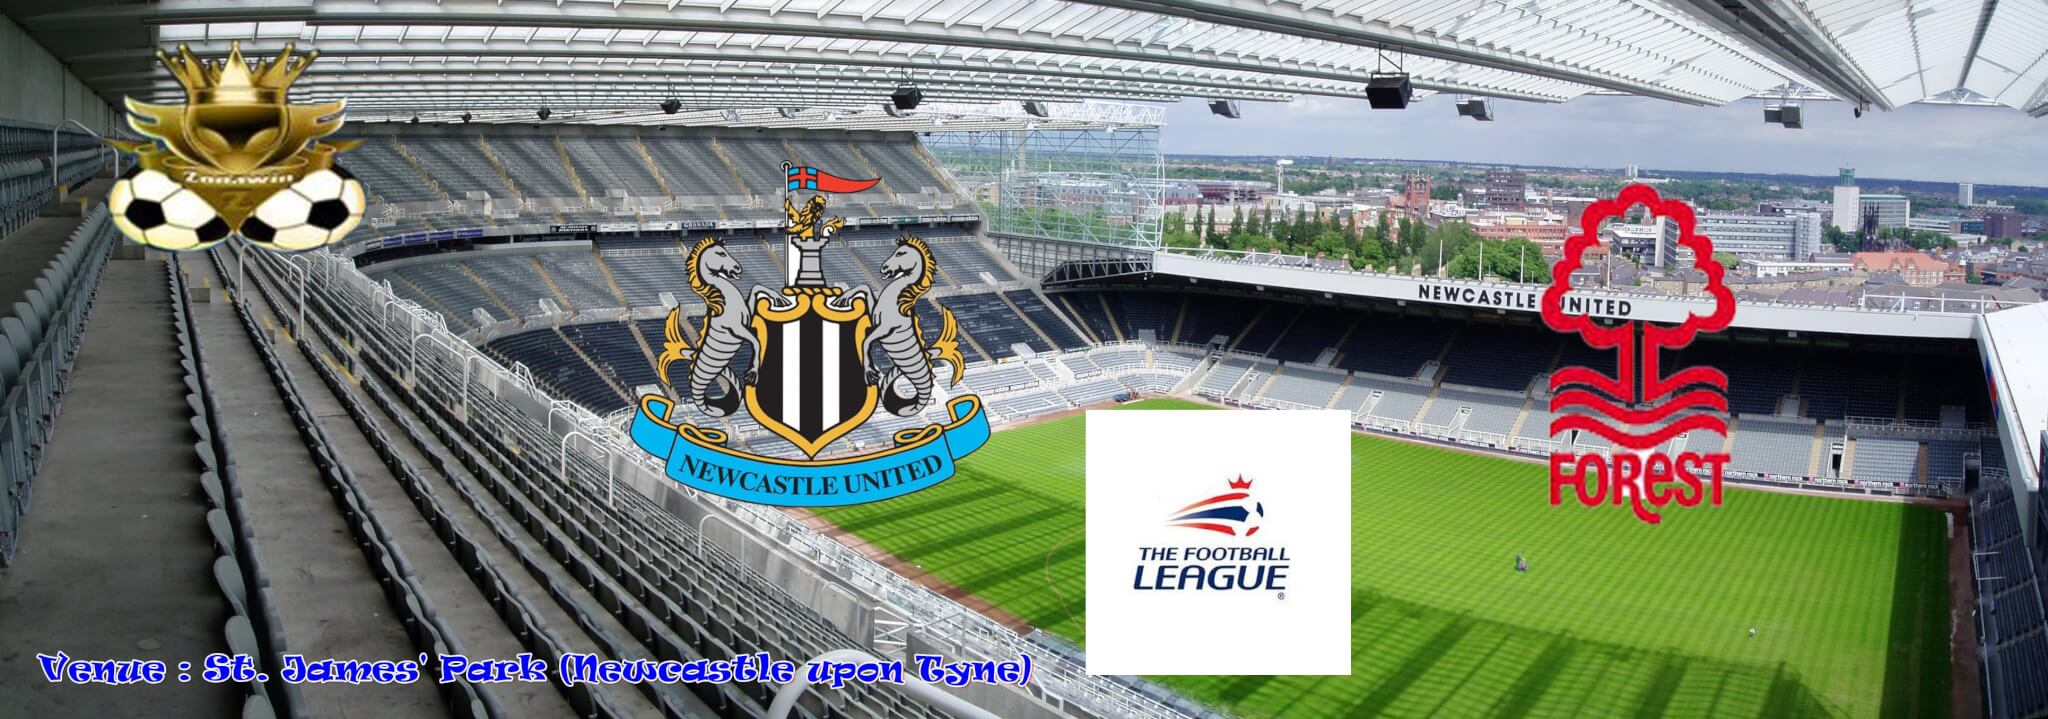 prediksi-newcastle-united-vs-nottingham-forest-31-desember-2016